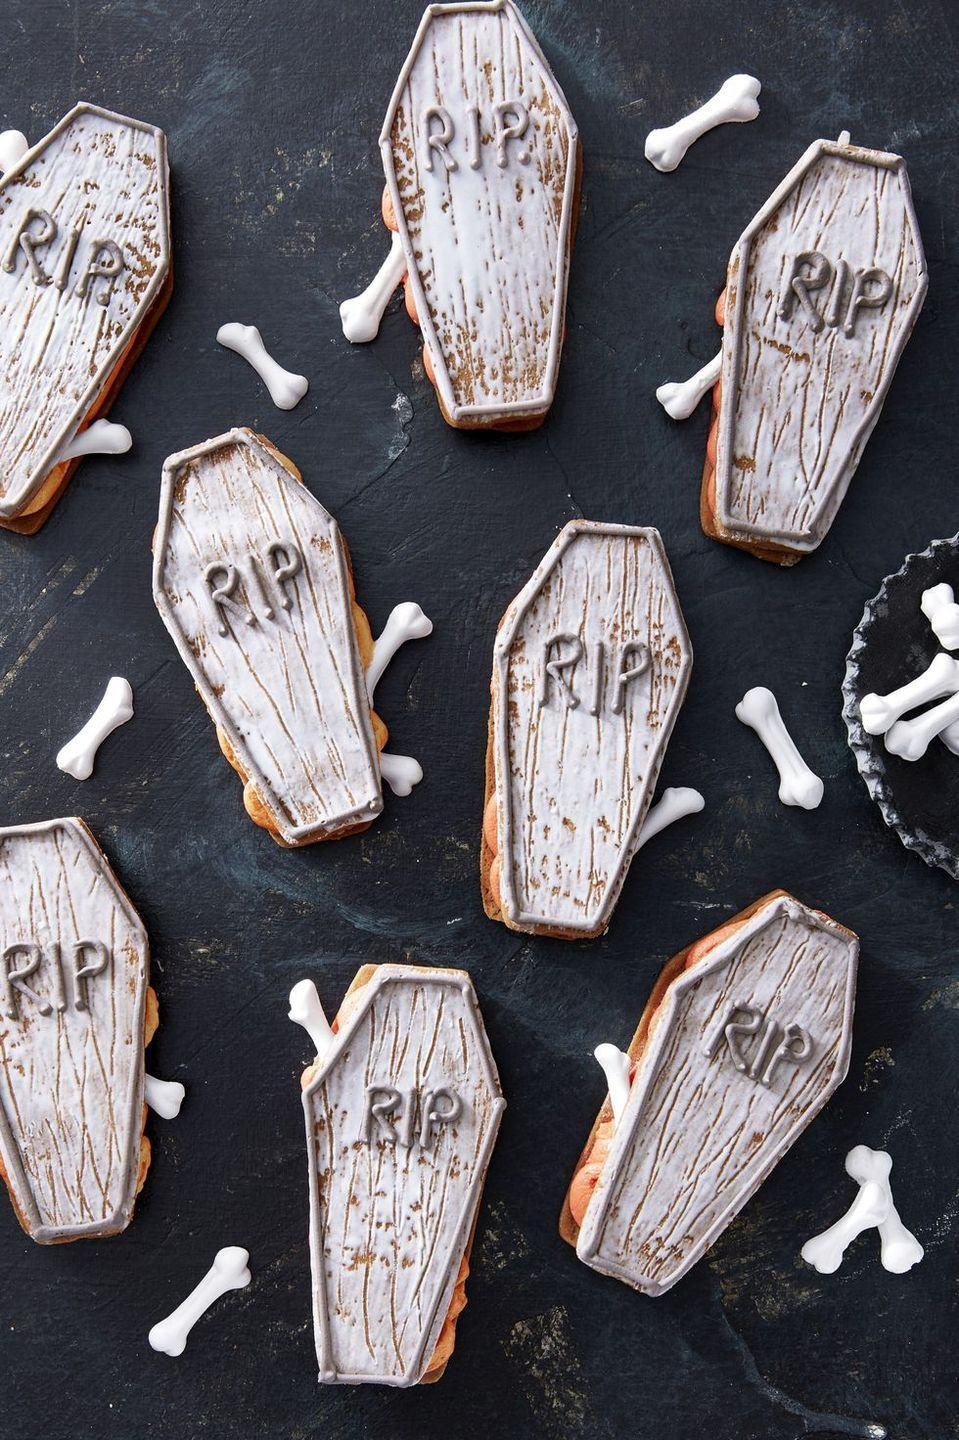 """<p>These chocolate molasses cookies sandwiched with buttercream frosting look freakishly real. Better eat 'em all before they come back to life.</p><p><em><a href=""""https://www.countryliving.com/food-drinks/a28943552/coffin-sandwich-cookies/"""" rel=""""nofollow noopener"""" target=""""_blank"""" data-ylk=""""slk:Get the recipe from Country Living »"""" class=""""link rapid-noclick-resp"""">Get the recipe from Country Living »</a></em></p>"""